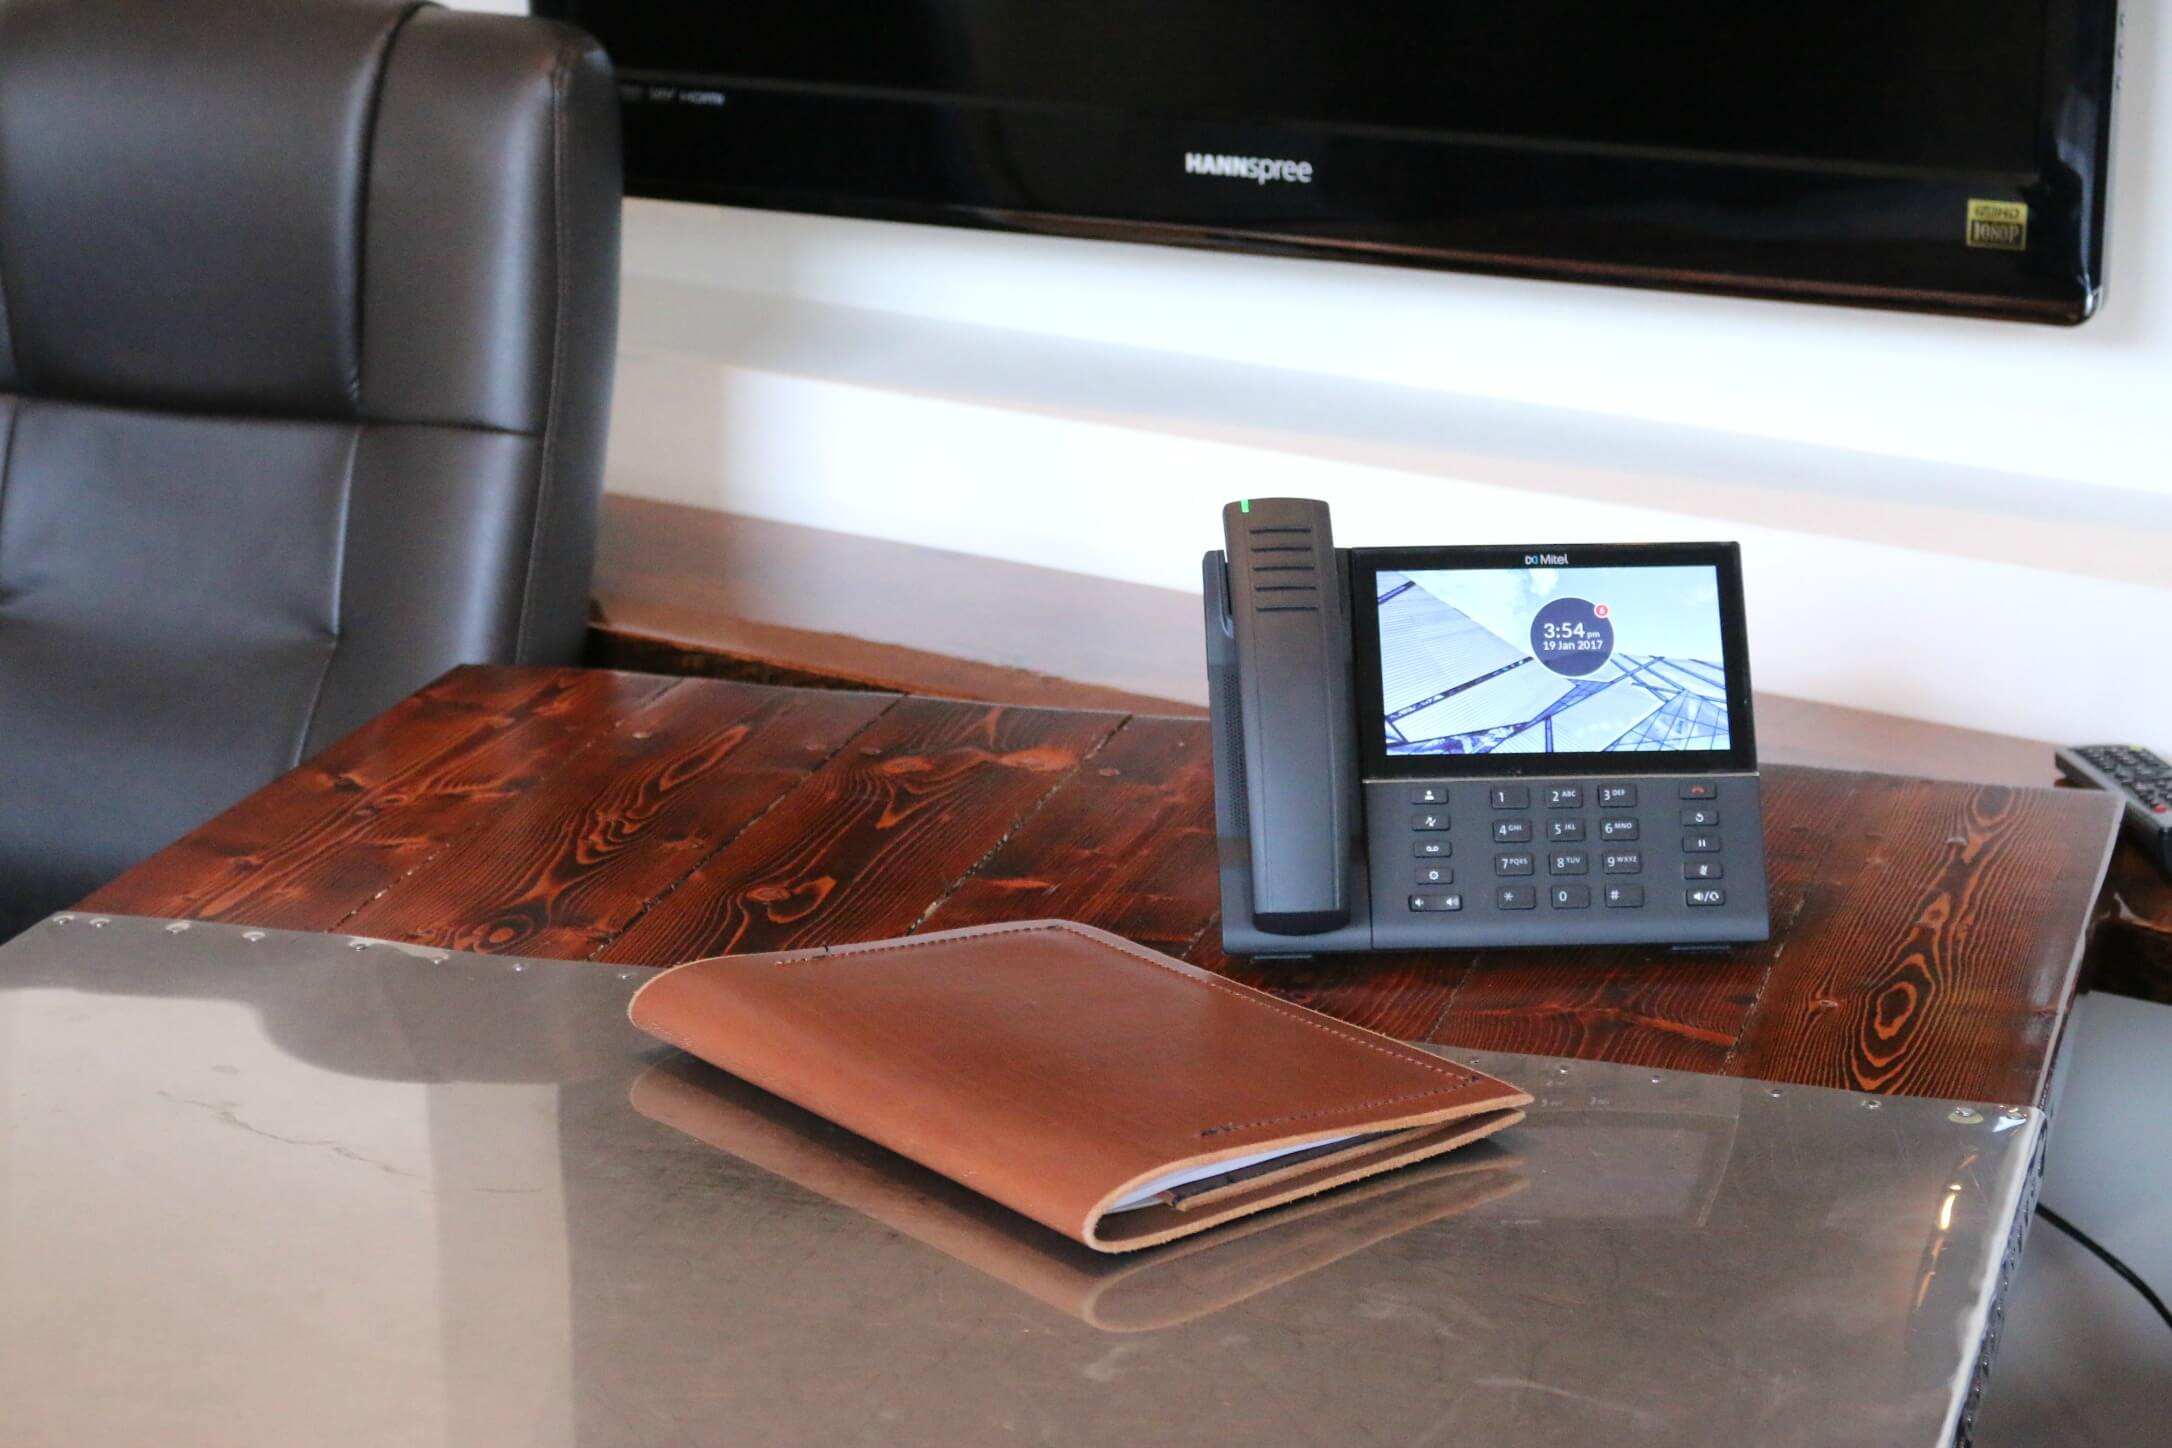 Front View of Mitel 6873 SIP Phone on Wooden Desk with Laether Folder